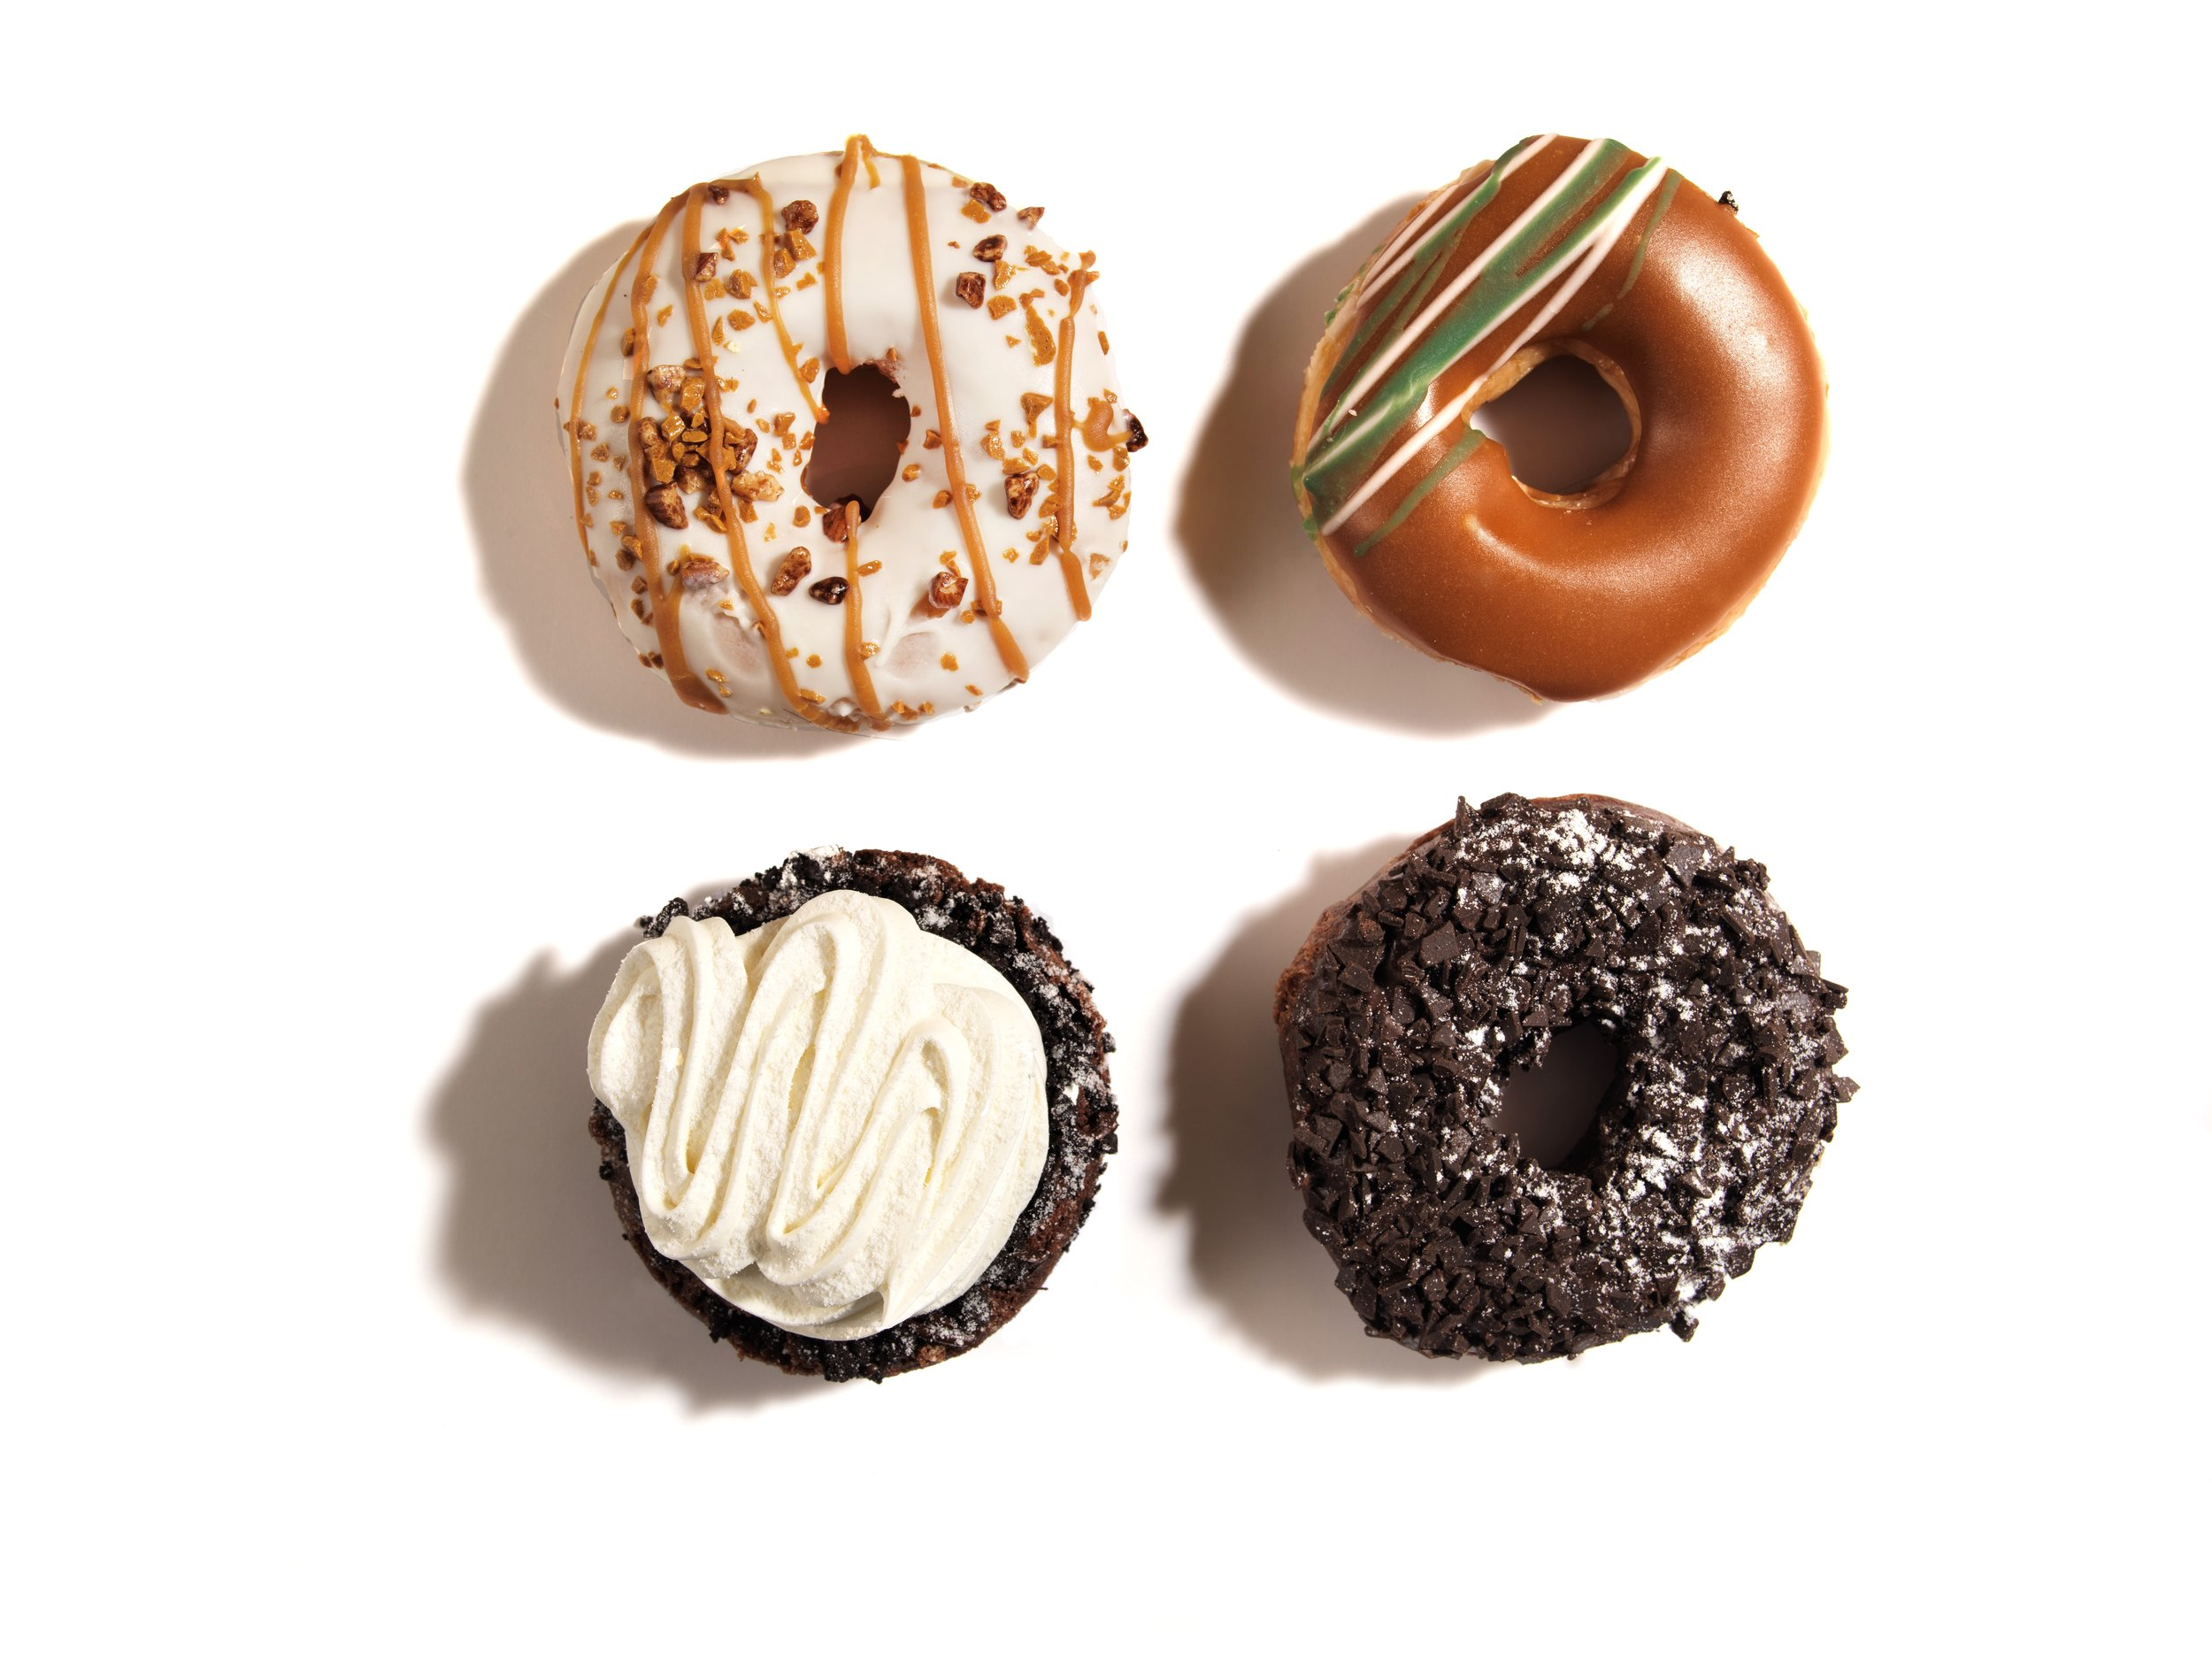 - As I wrote in last week's blog post, sugar is toxic and brings destruction where ever it goes. It is a major factor in diabetes, feeds caner, and has been implicated in many other diseases.